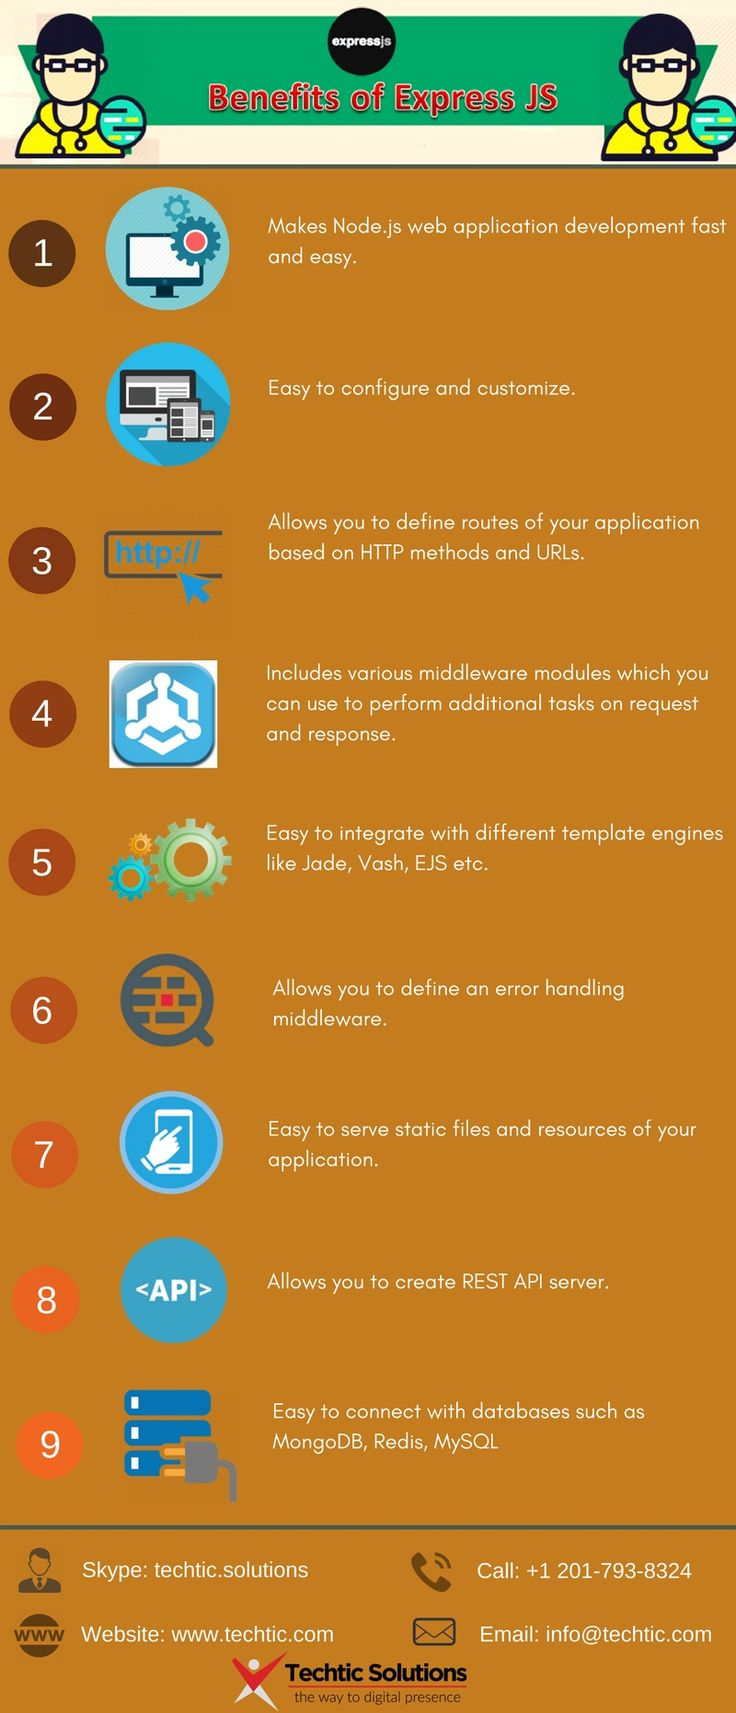 In #Infographics, we provide the Benefits of ExpressJS likes Makes Node.js web application development fast and easy, easy to configure and customize, Allows you to create REST API server etc. Techtic Solutions is providing ExpressJS development services for customers. So, if you need any ExpressJS development services. Call us @ (201) 793-8324 or visit us @ https://www.techtic.com/expressjs-development/  #ExpressJS #ExpressJSdevelopment #ExpressJSapplication #ExpressJSwebdevelopment…